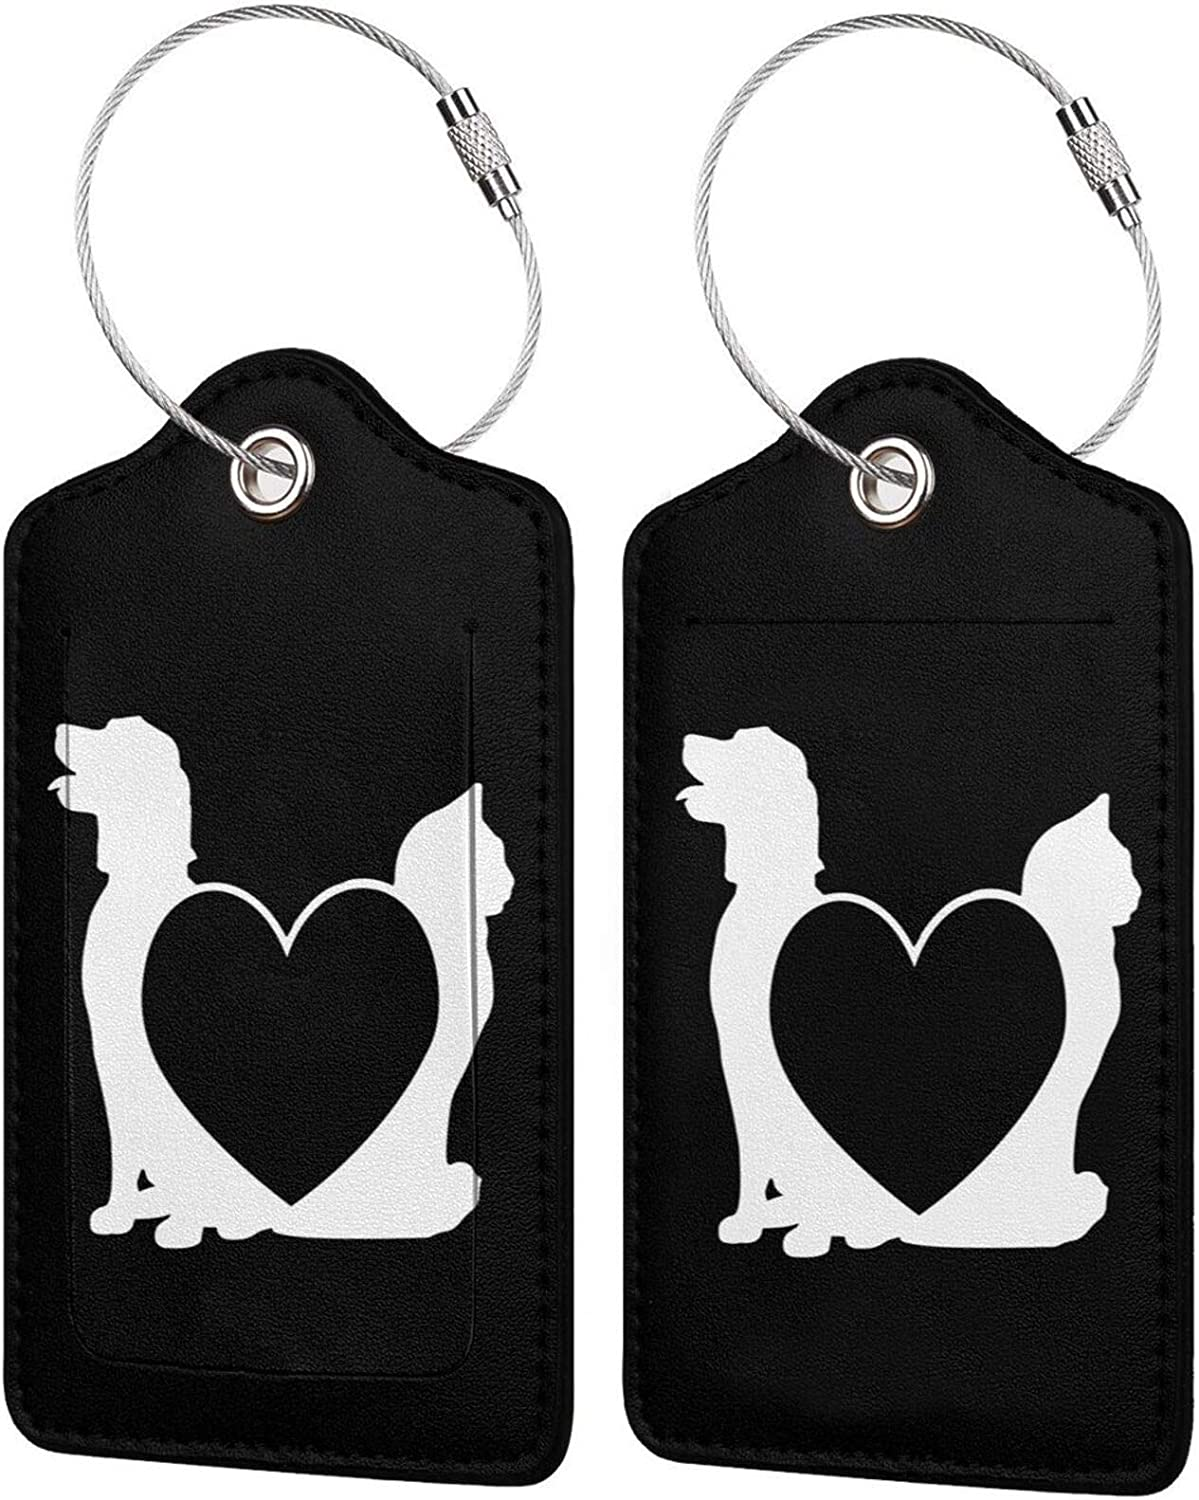 Large-scale sale Dog Max 52% OFF and cat PU Leather Baggage Tags Cover Privacy with Rectangle